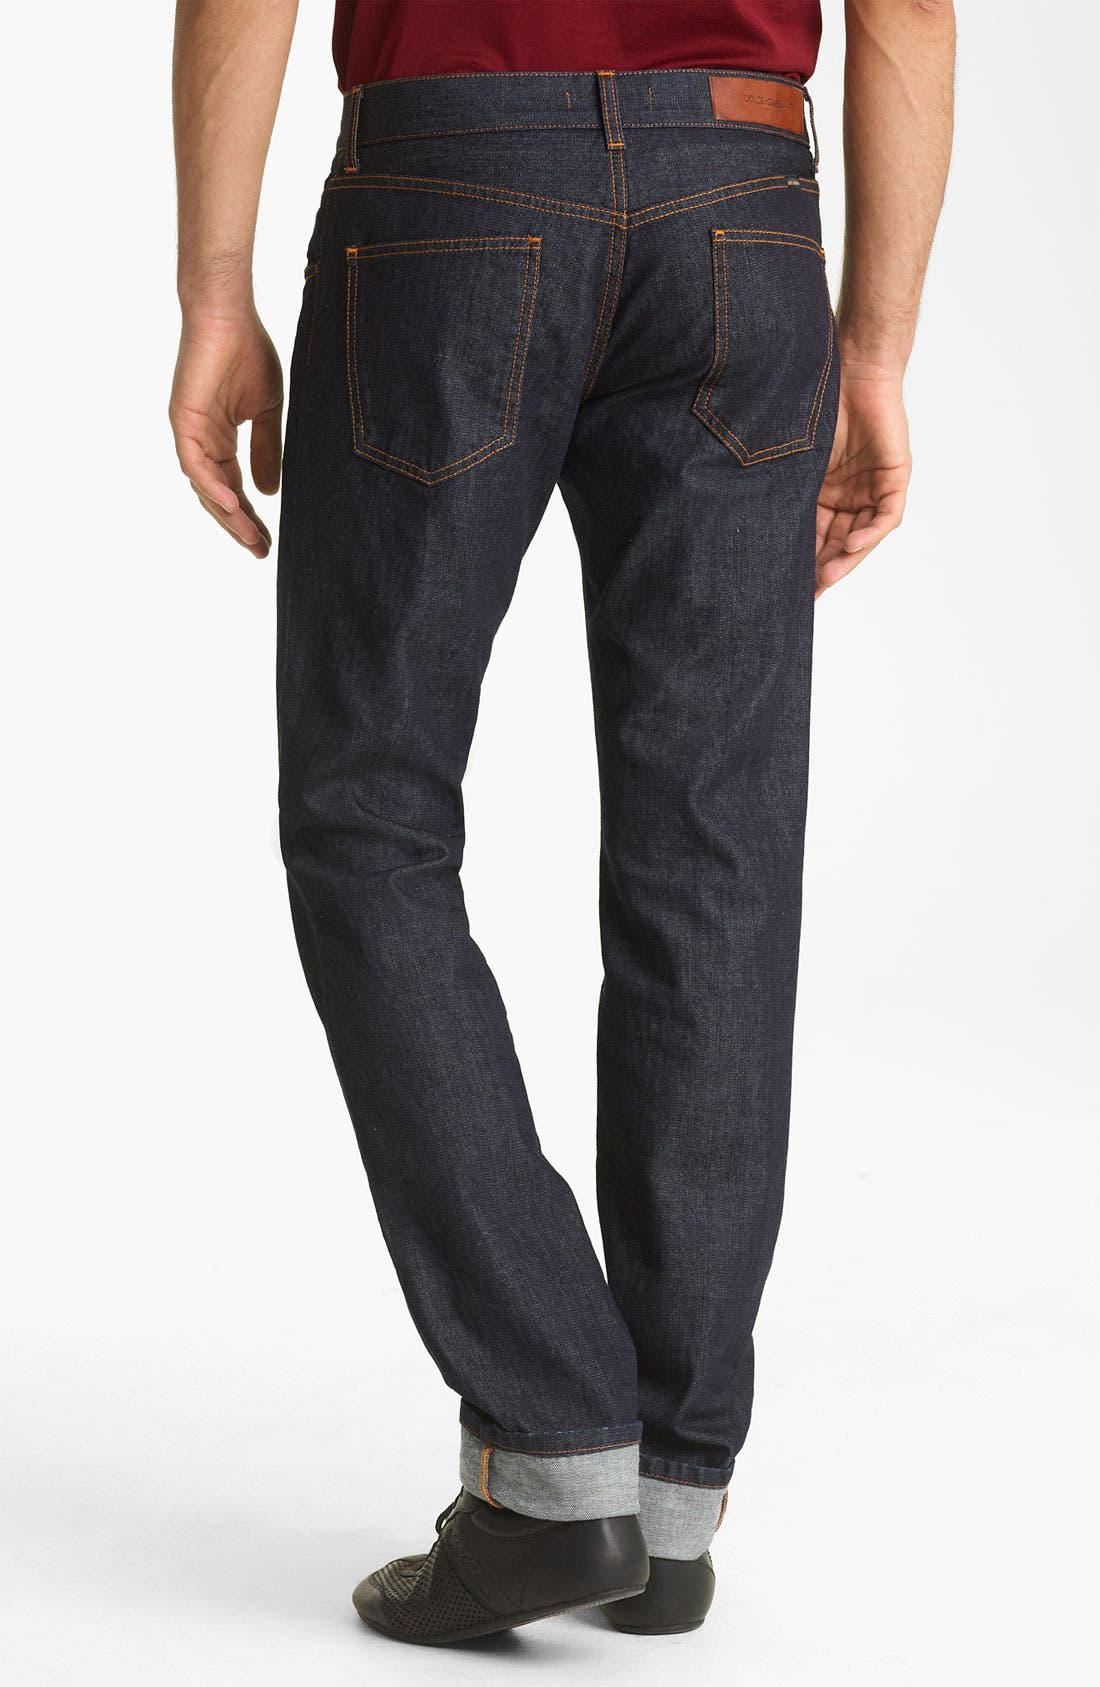 Main Image - Dolce&Gabbana Slim Straight Leg Jeans (Medium Grey Wash)